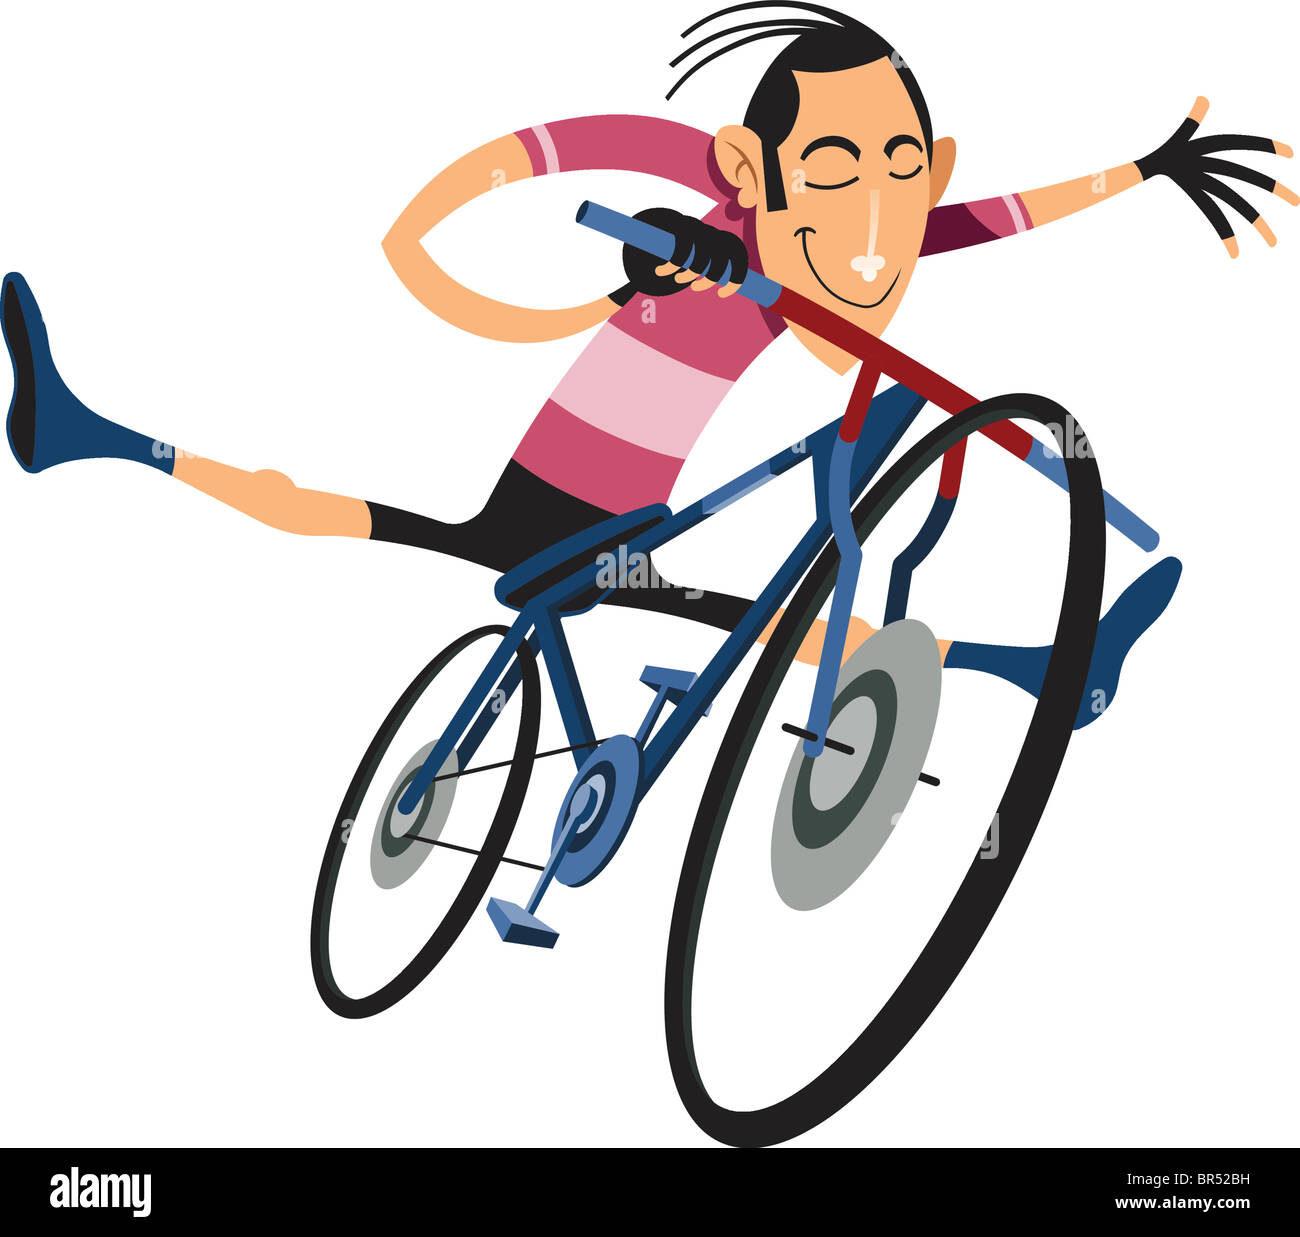 A man doing stunts on a bicycle - Stock Image